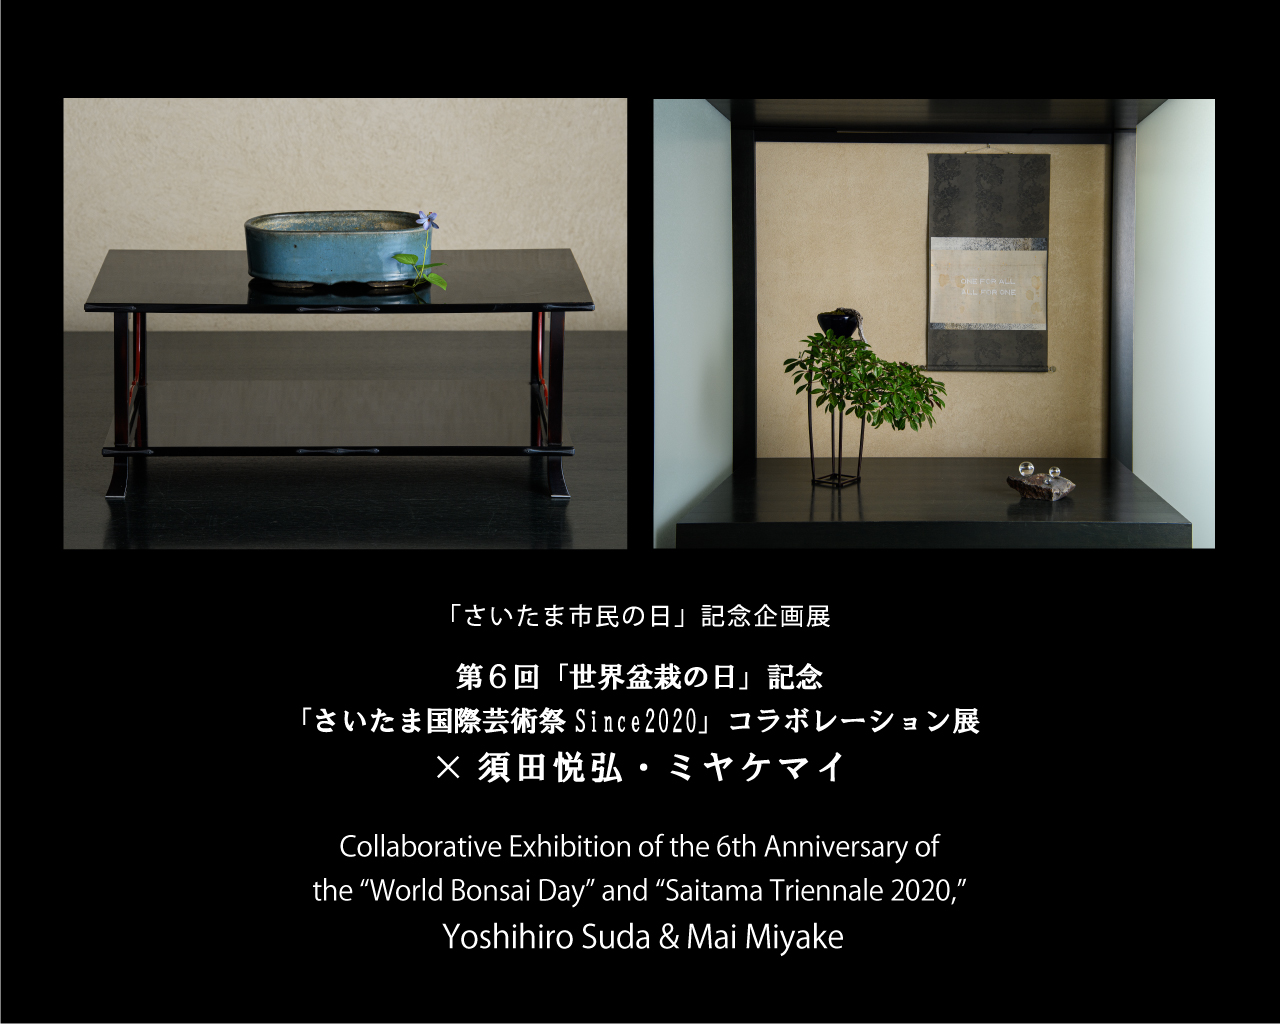 "Collaborative Exhibition of the 6th Anniversary of the ""World Bonsai Day"" and ""Saitama Triennale 2020,"" Yoshihiro Suda & Mai Miyake"